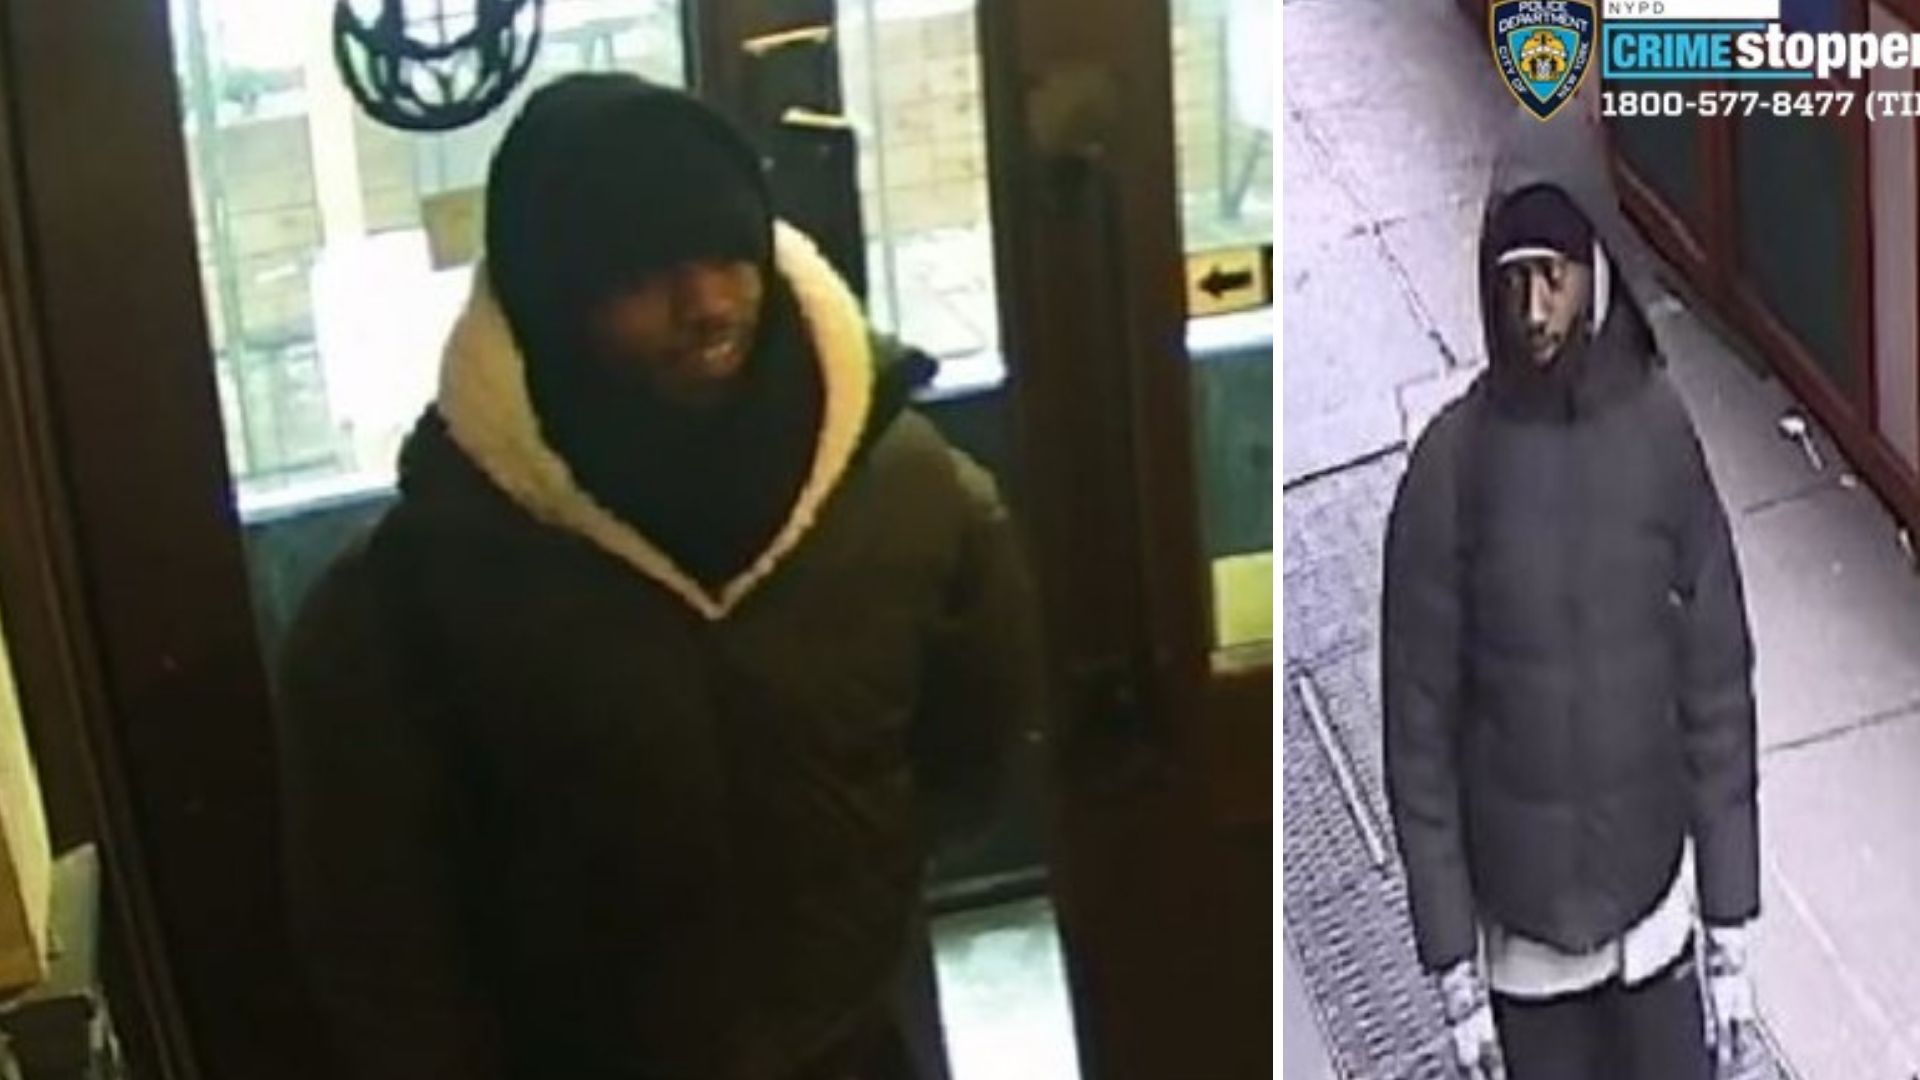 Suspect in Manhattan assault, burglary pattern